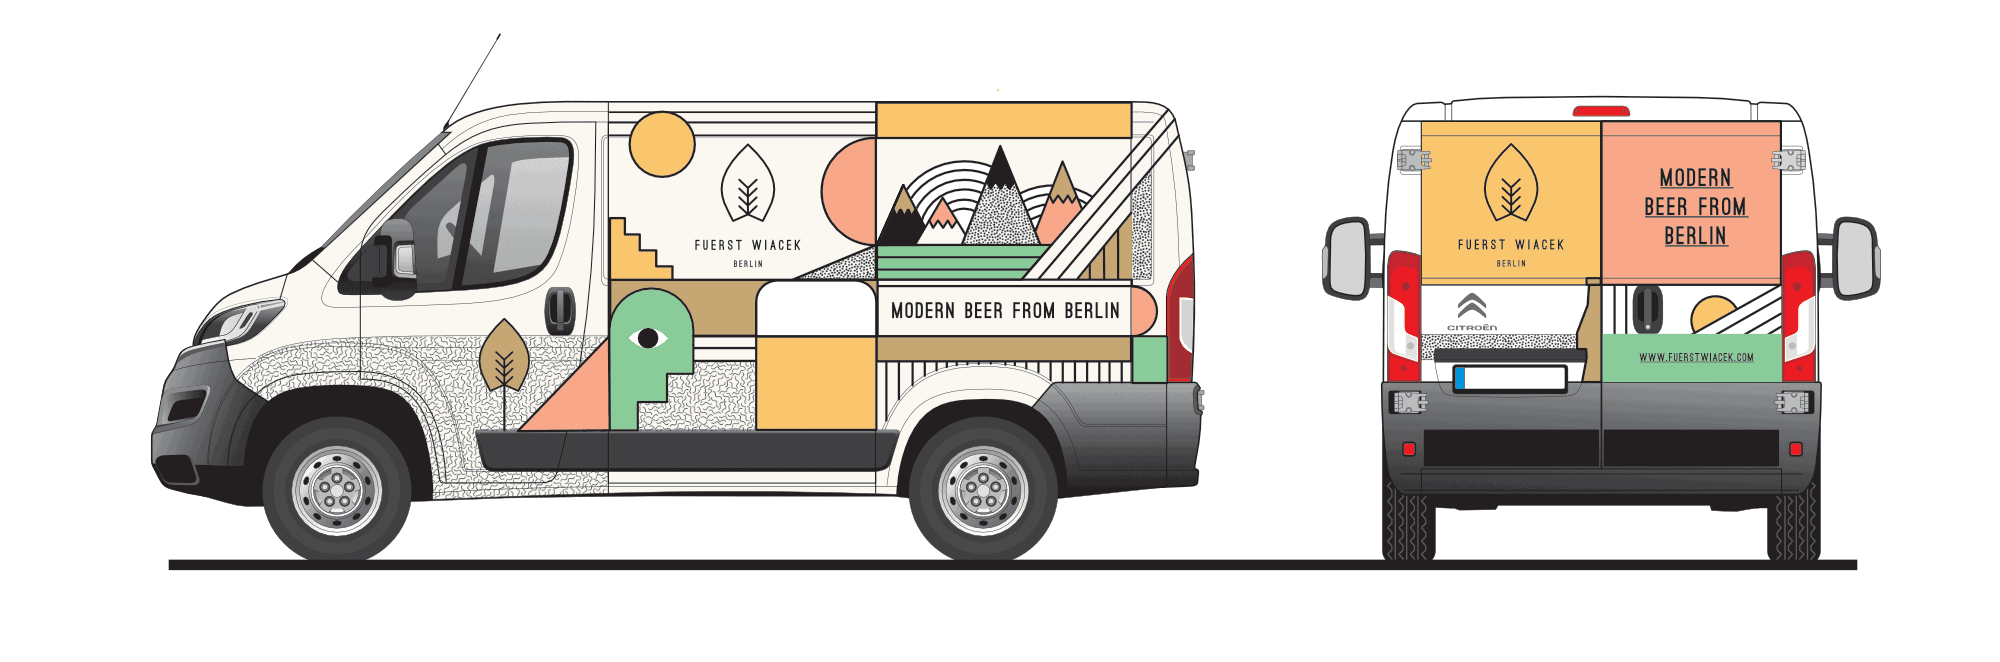 The FUERST WIACEK delivery van - used for making personal deliveries to Craft Beer bars and bottle shops in Berlin